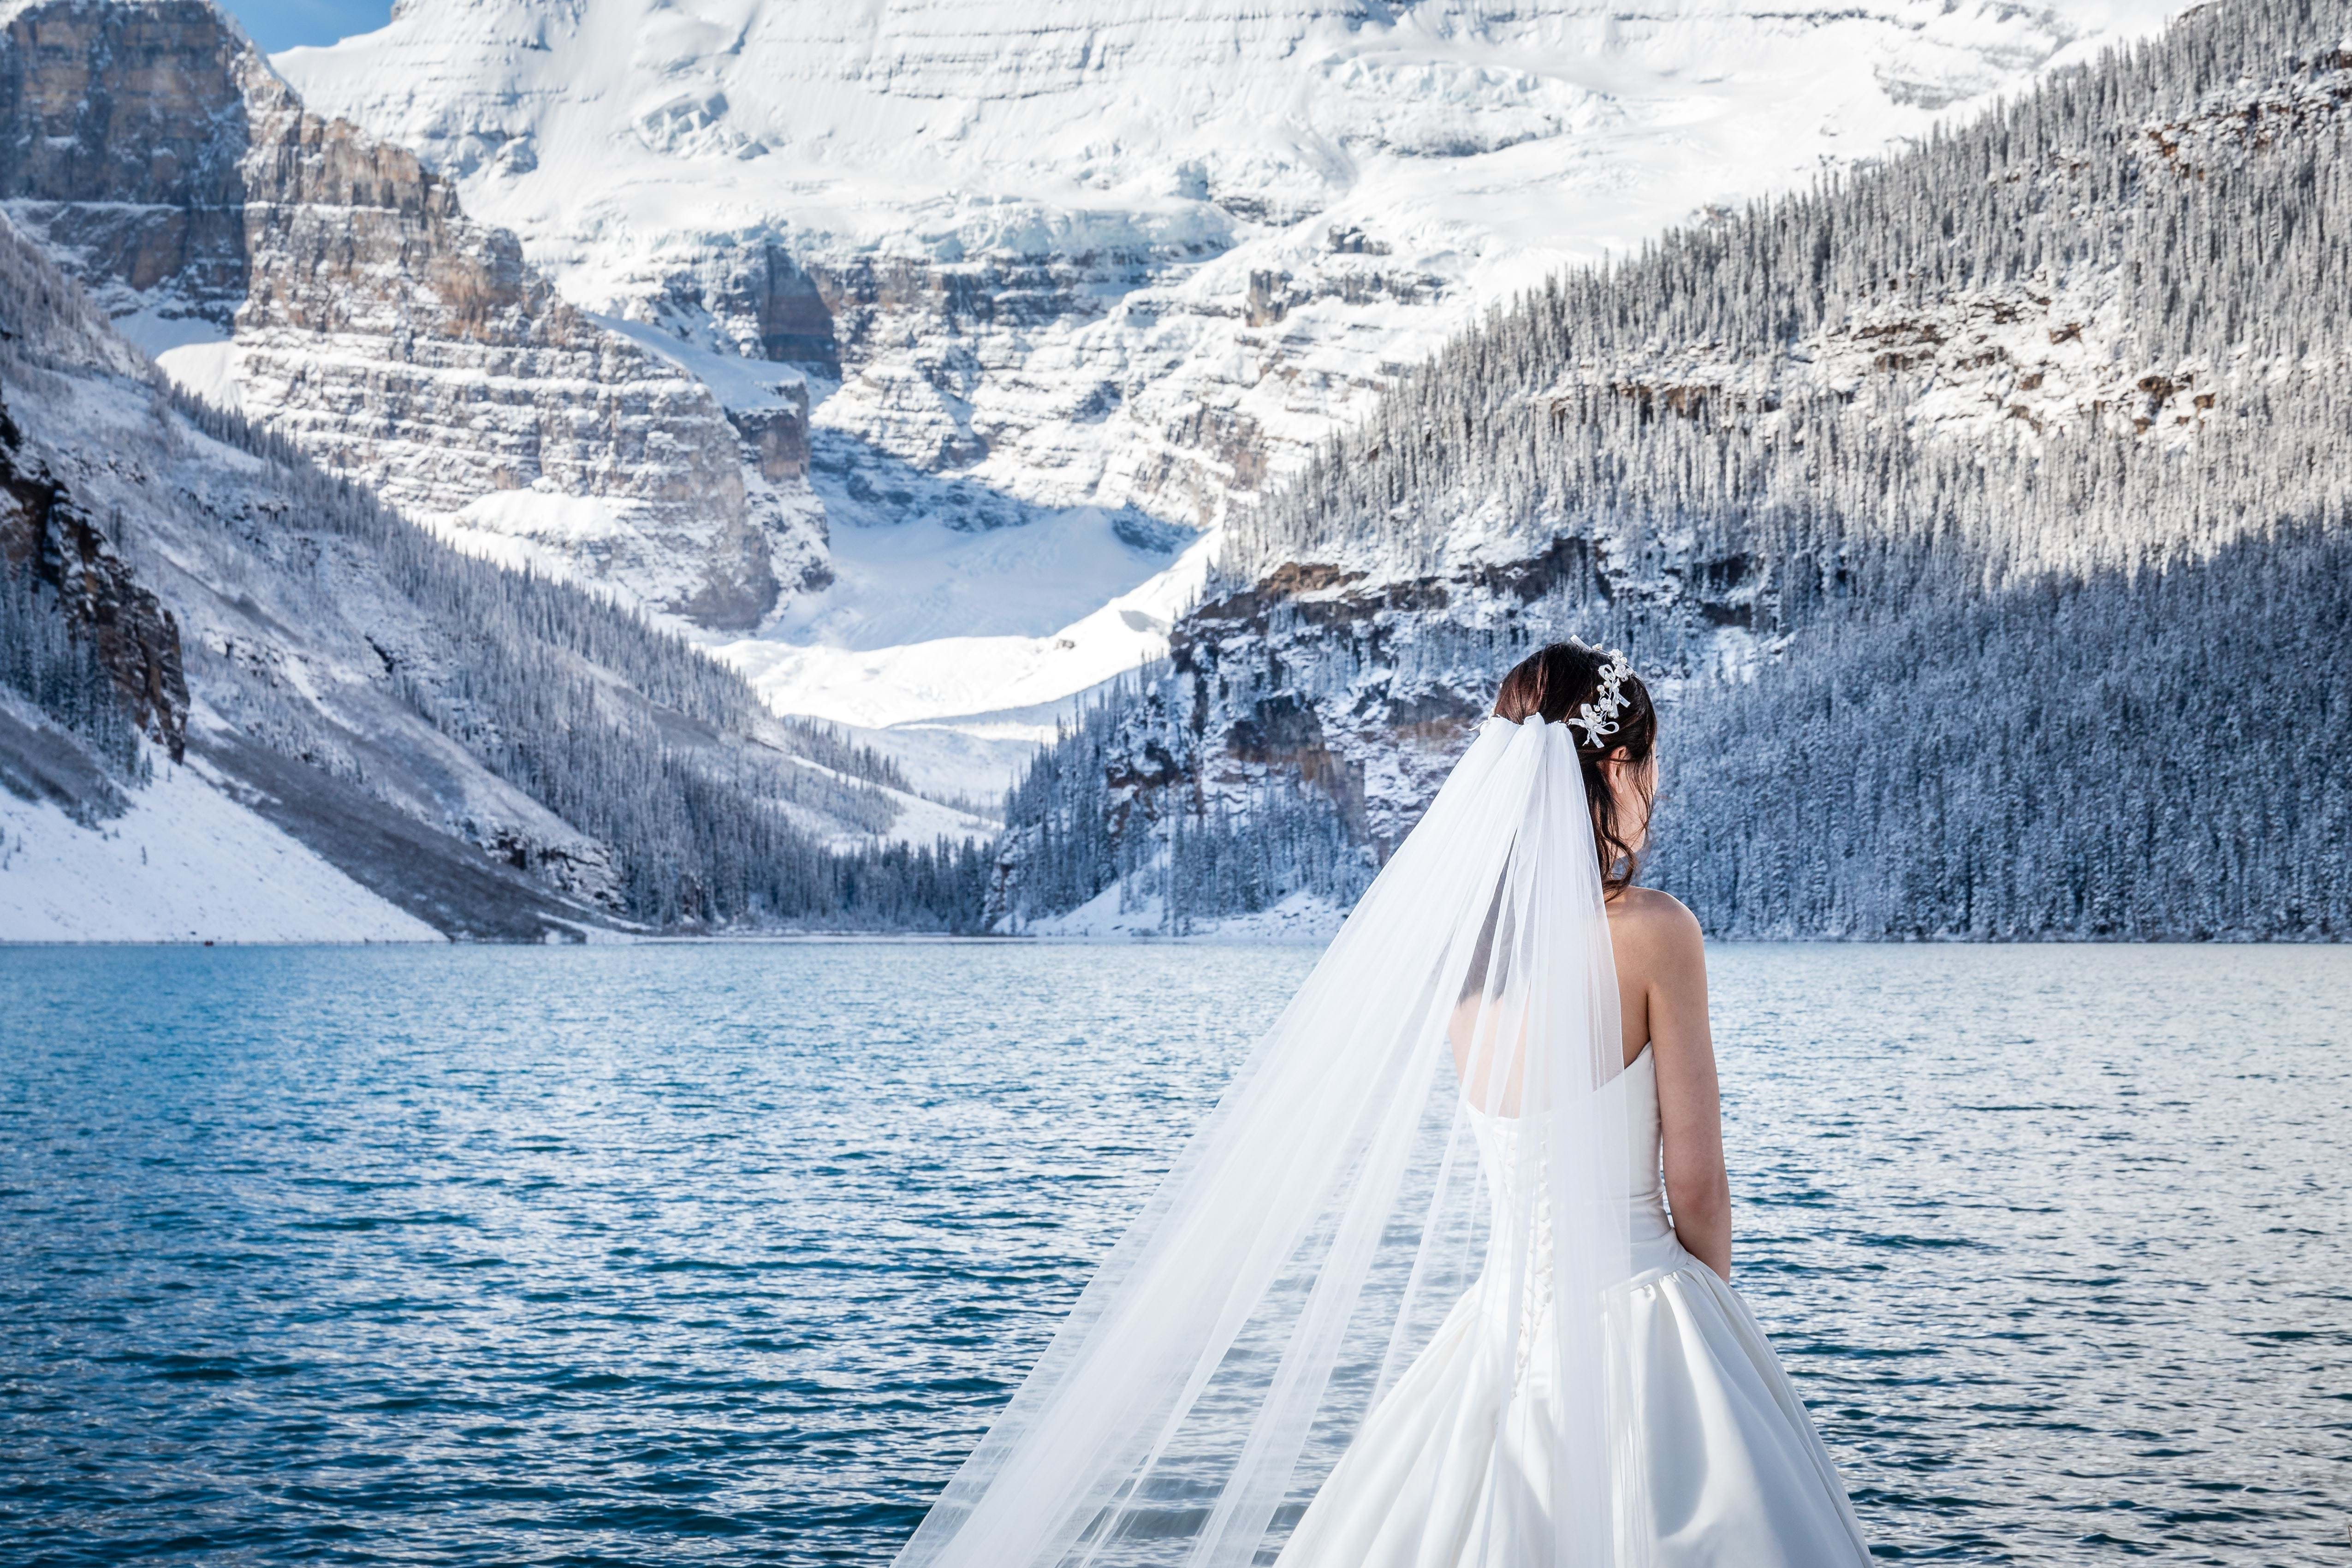 Canada, Perfect mountain scenery and the magical Lake Louise provide a stunning backdrop to your wedding